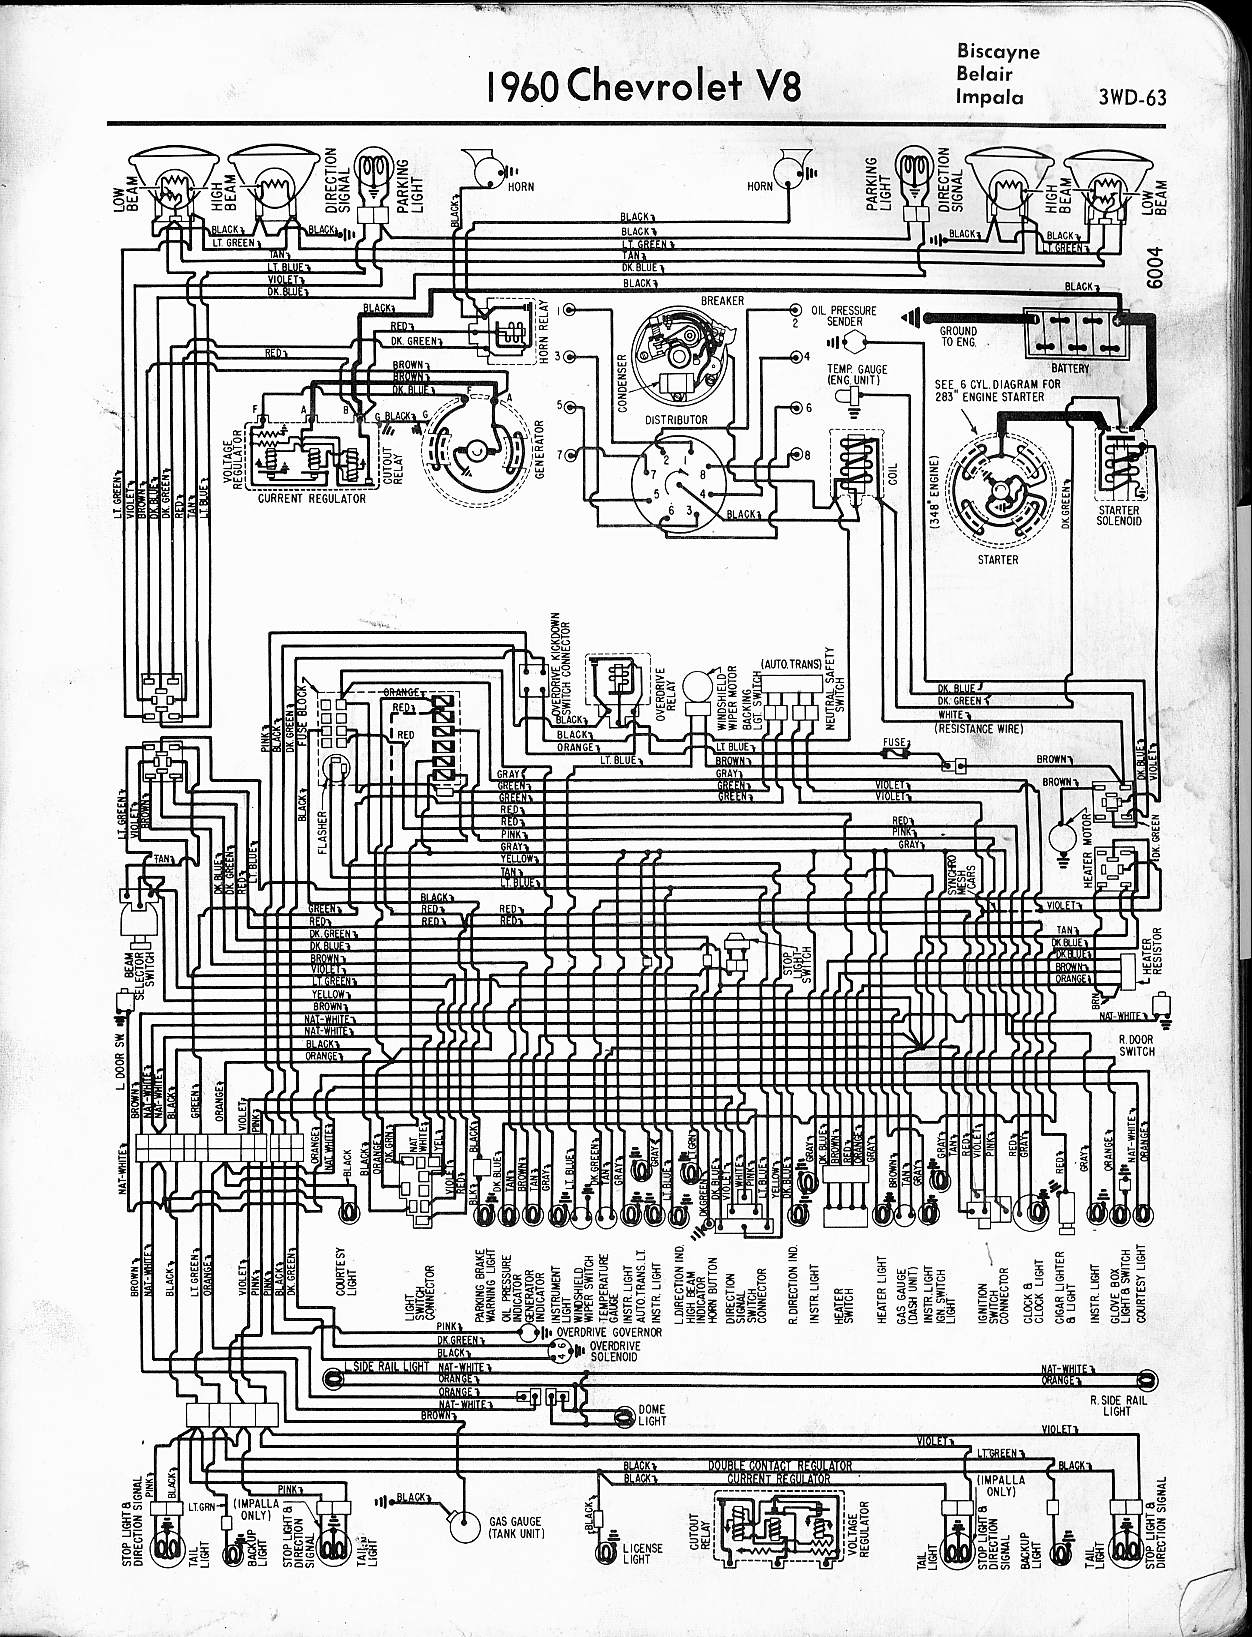 57 - 65 Chevy Wiring Diagrams | Windshield Wiper Wiring Diagram For 2003 Chevy Impala |  | The Old Car Manual Project